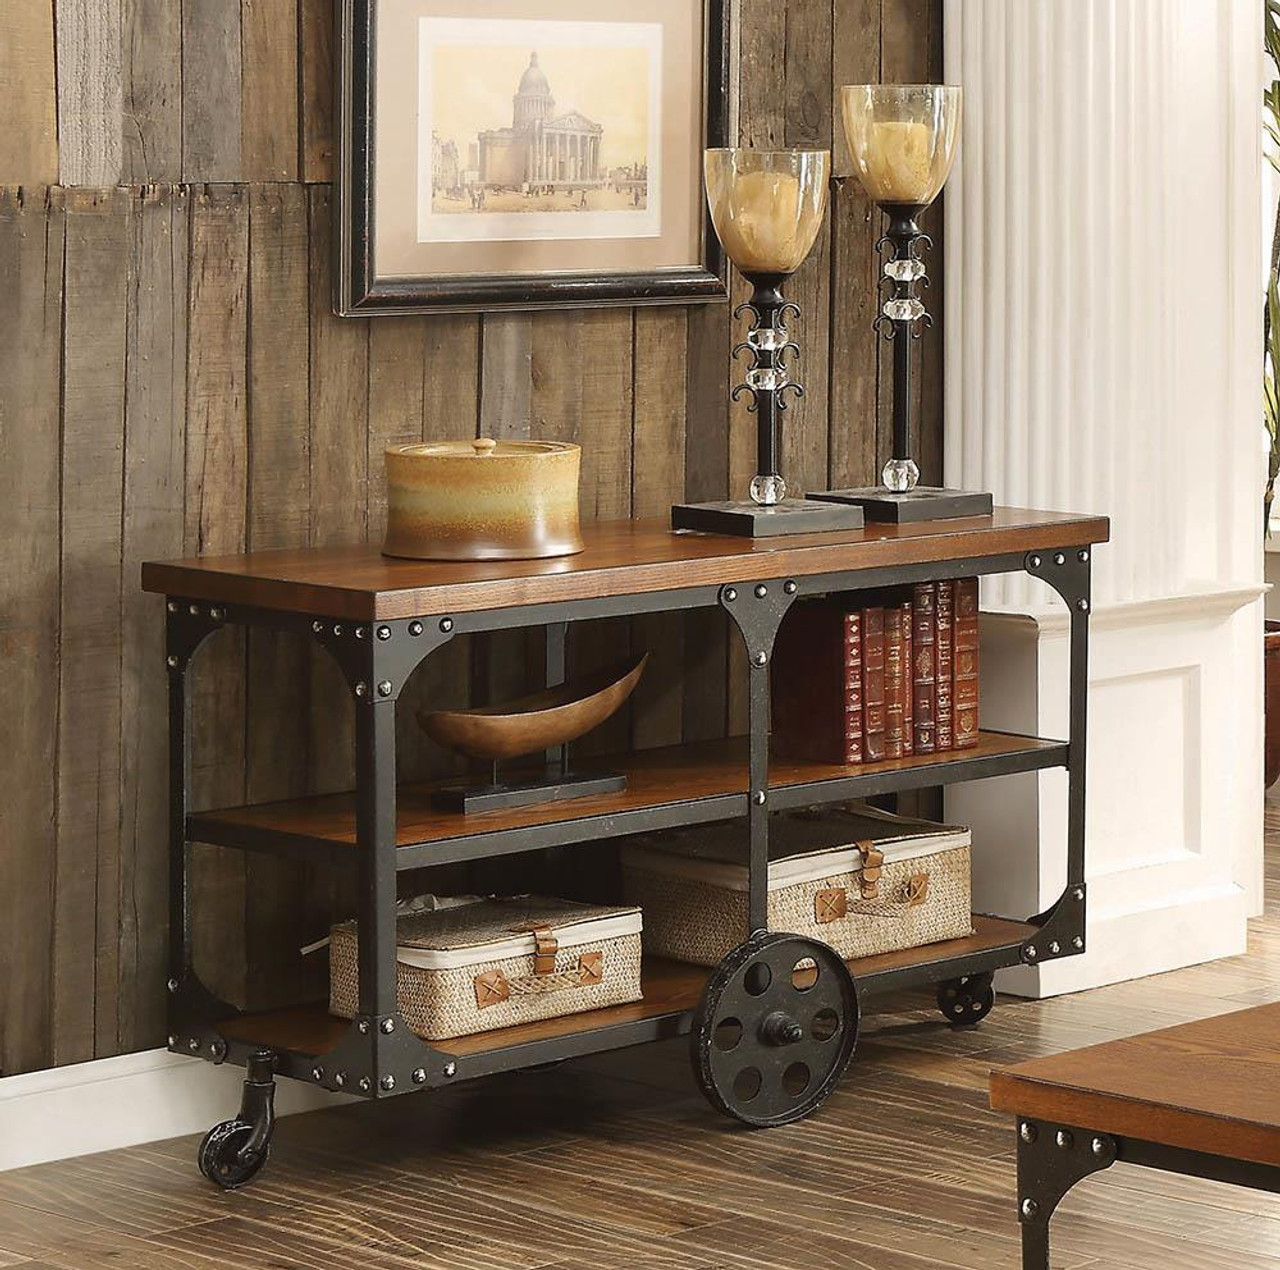 Living Room Industrial Rustic Occasional Tables Roy Sofa Table With 2 Shelf Rustic Brown 701129 At Altman S Billiards And Barstools